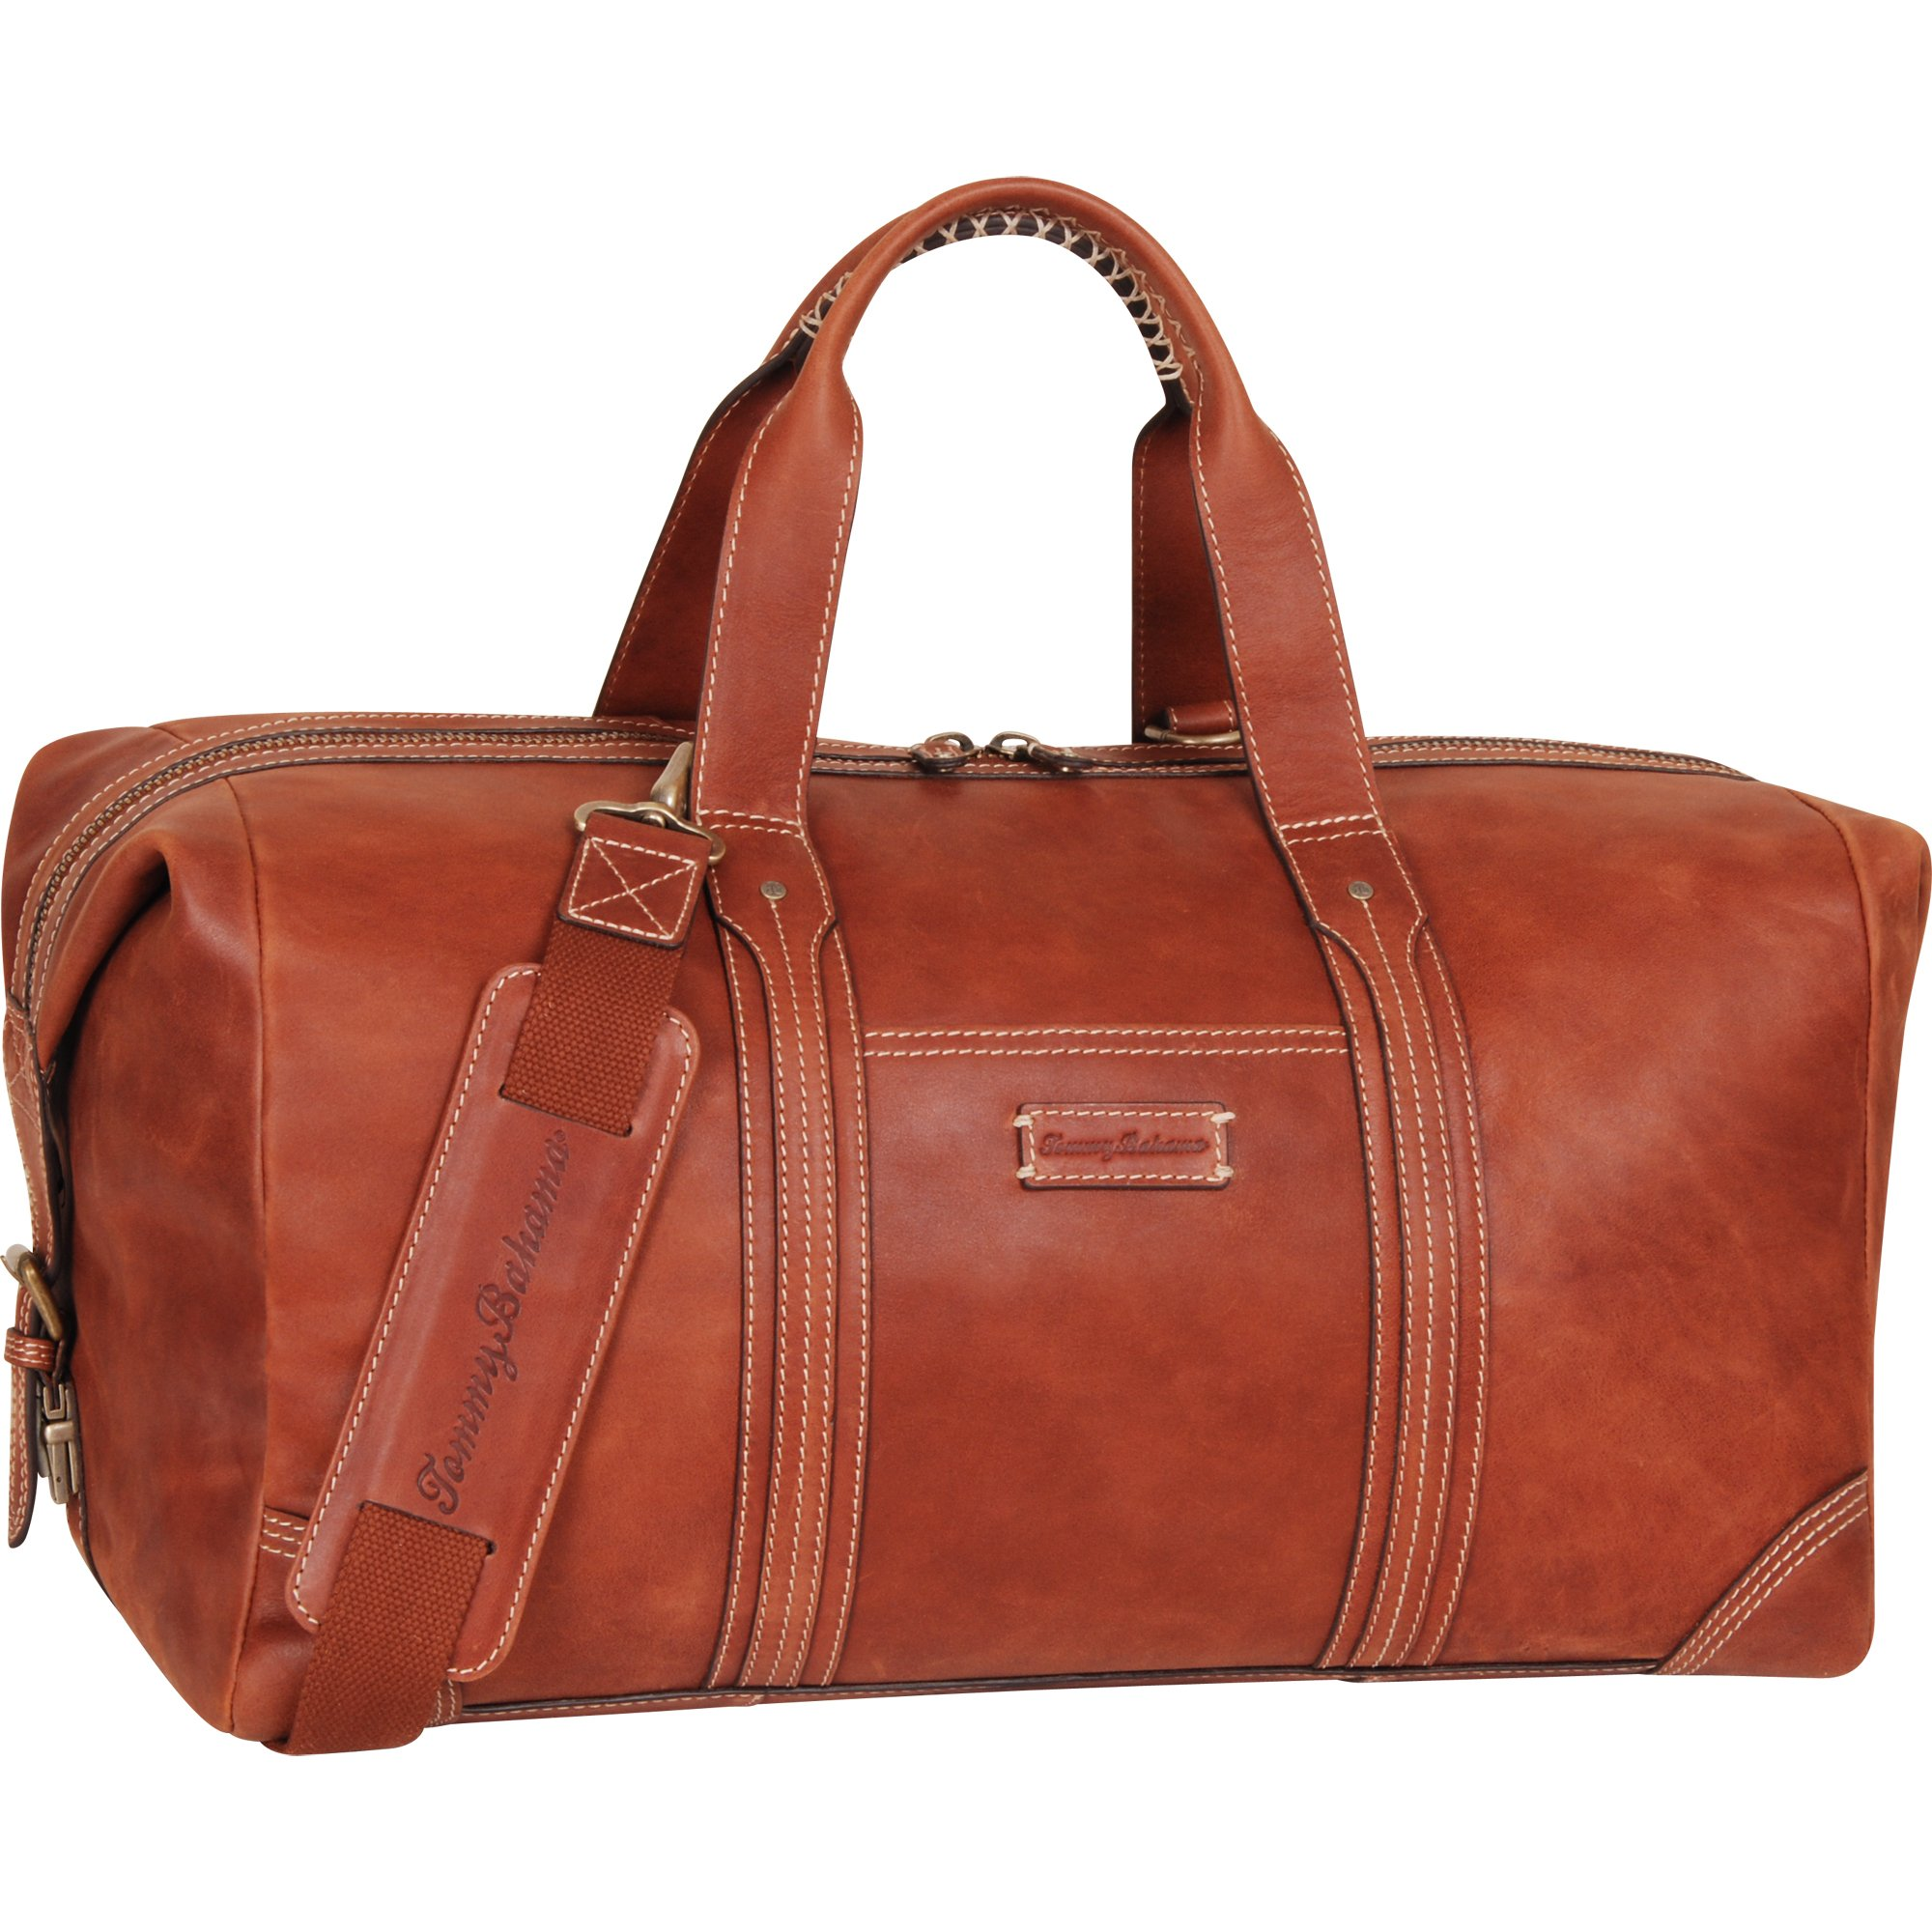 Tommy Bahama Travel Carry Duffle Bag, Tan